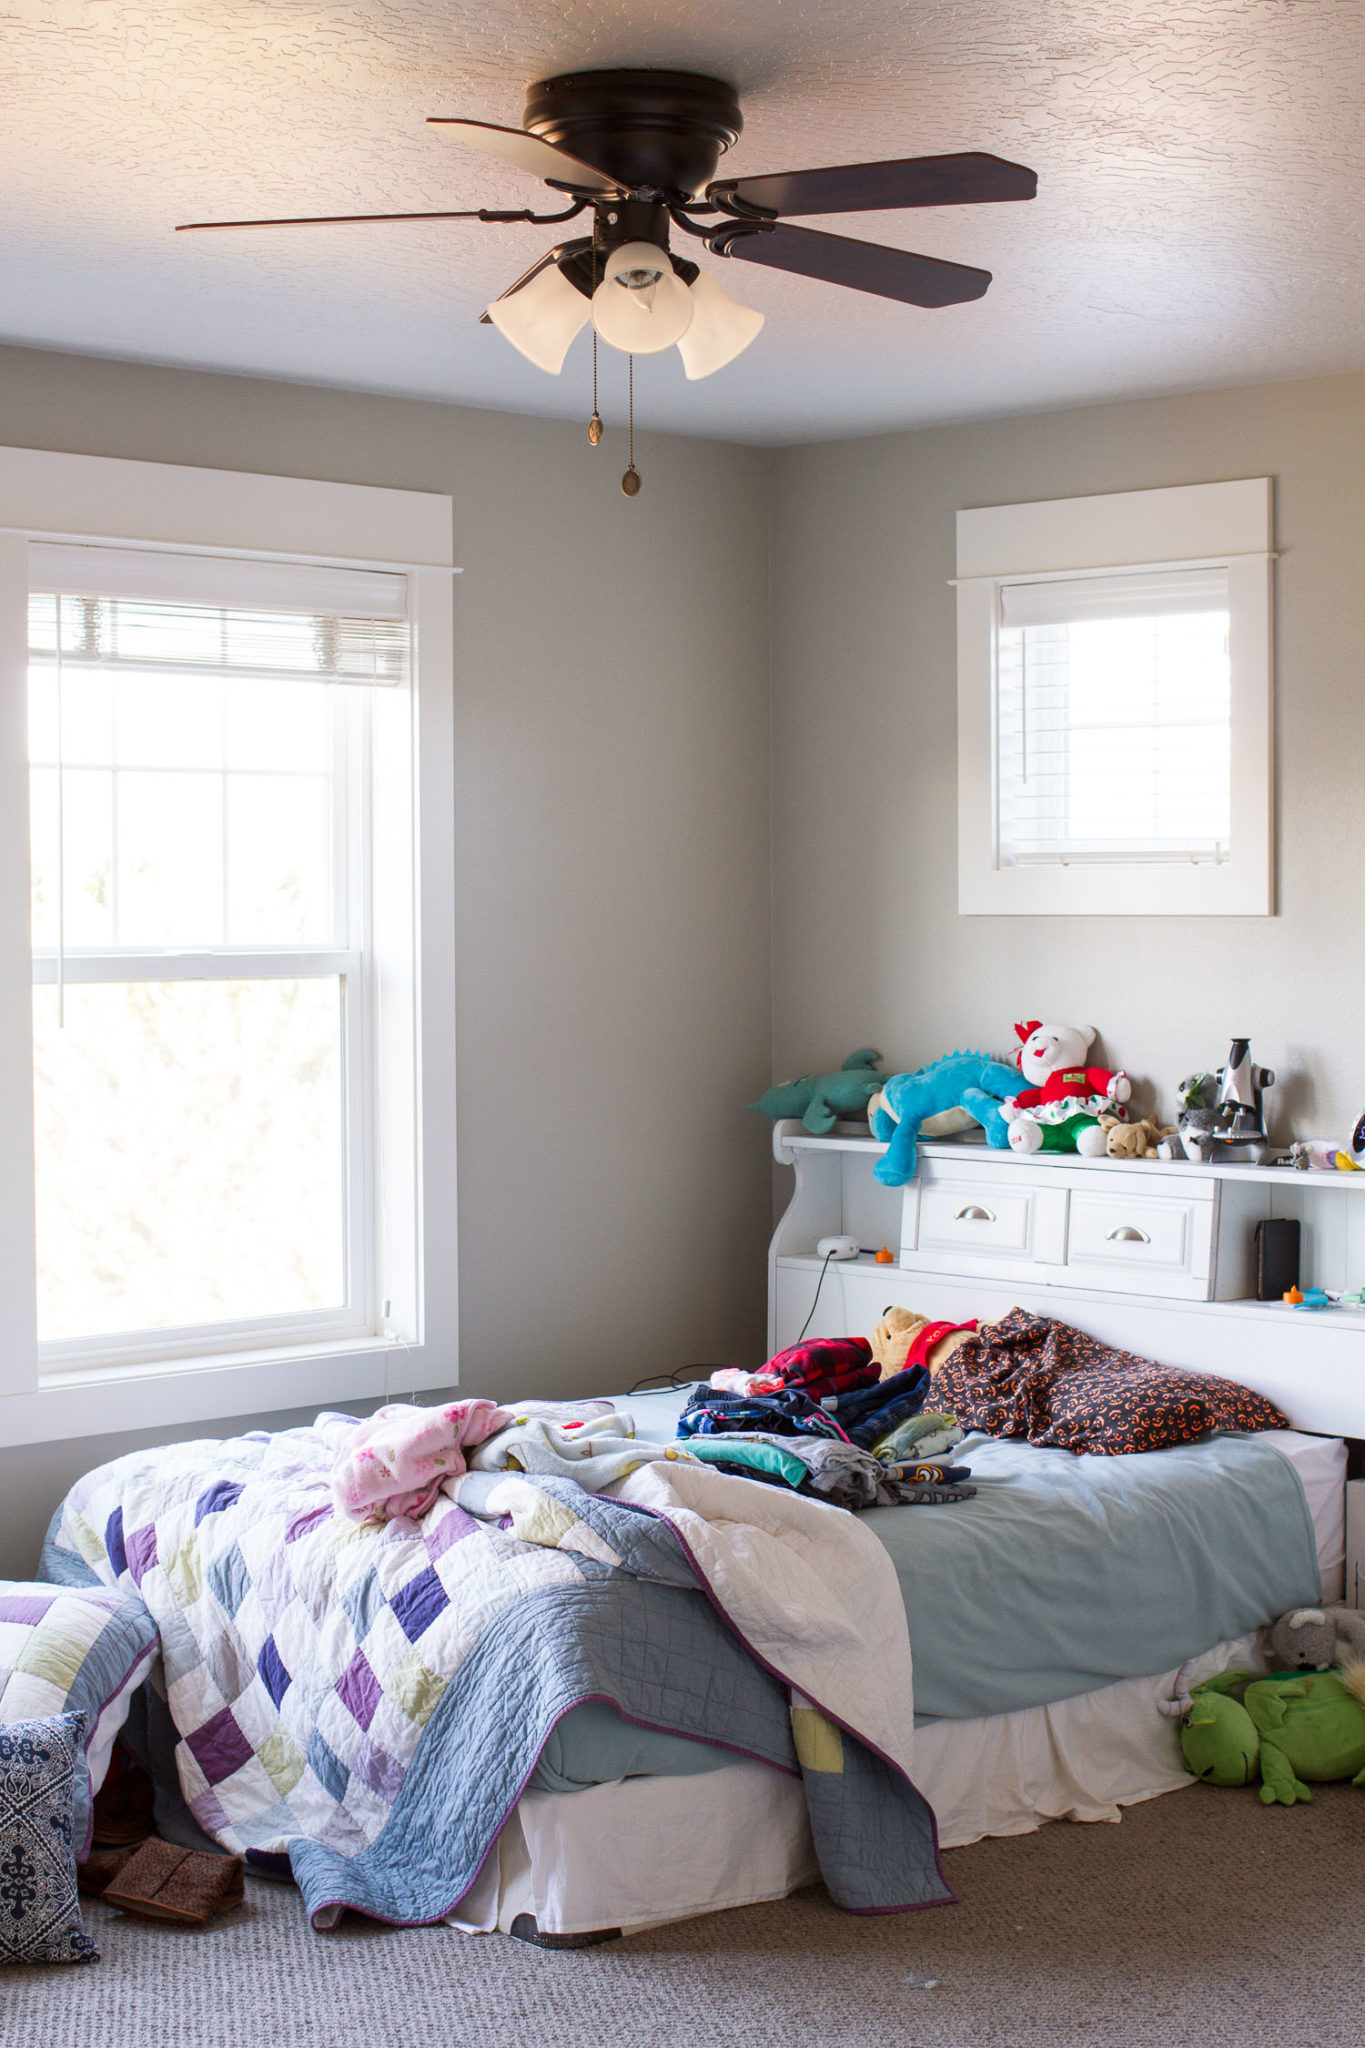 Our One Room Challenge project for Fall 2017 is our oldest daughter's bedroom. These before pictures show how desperately she needs a bedroom makeover!